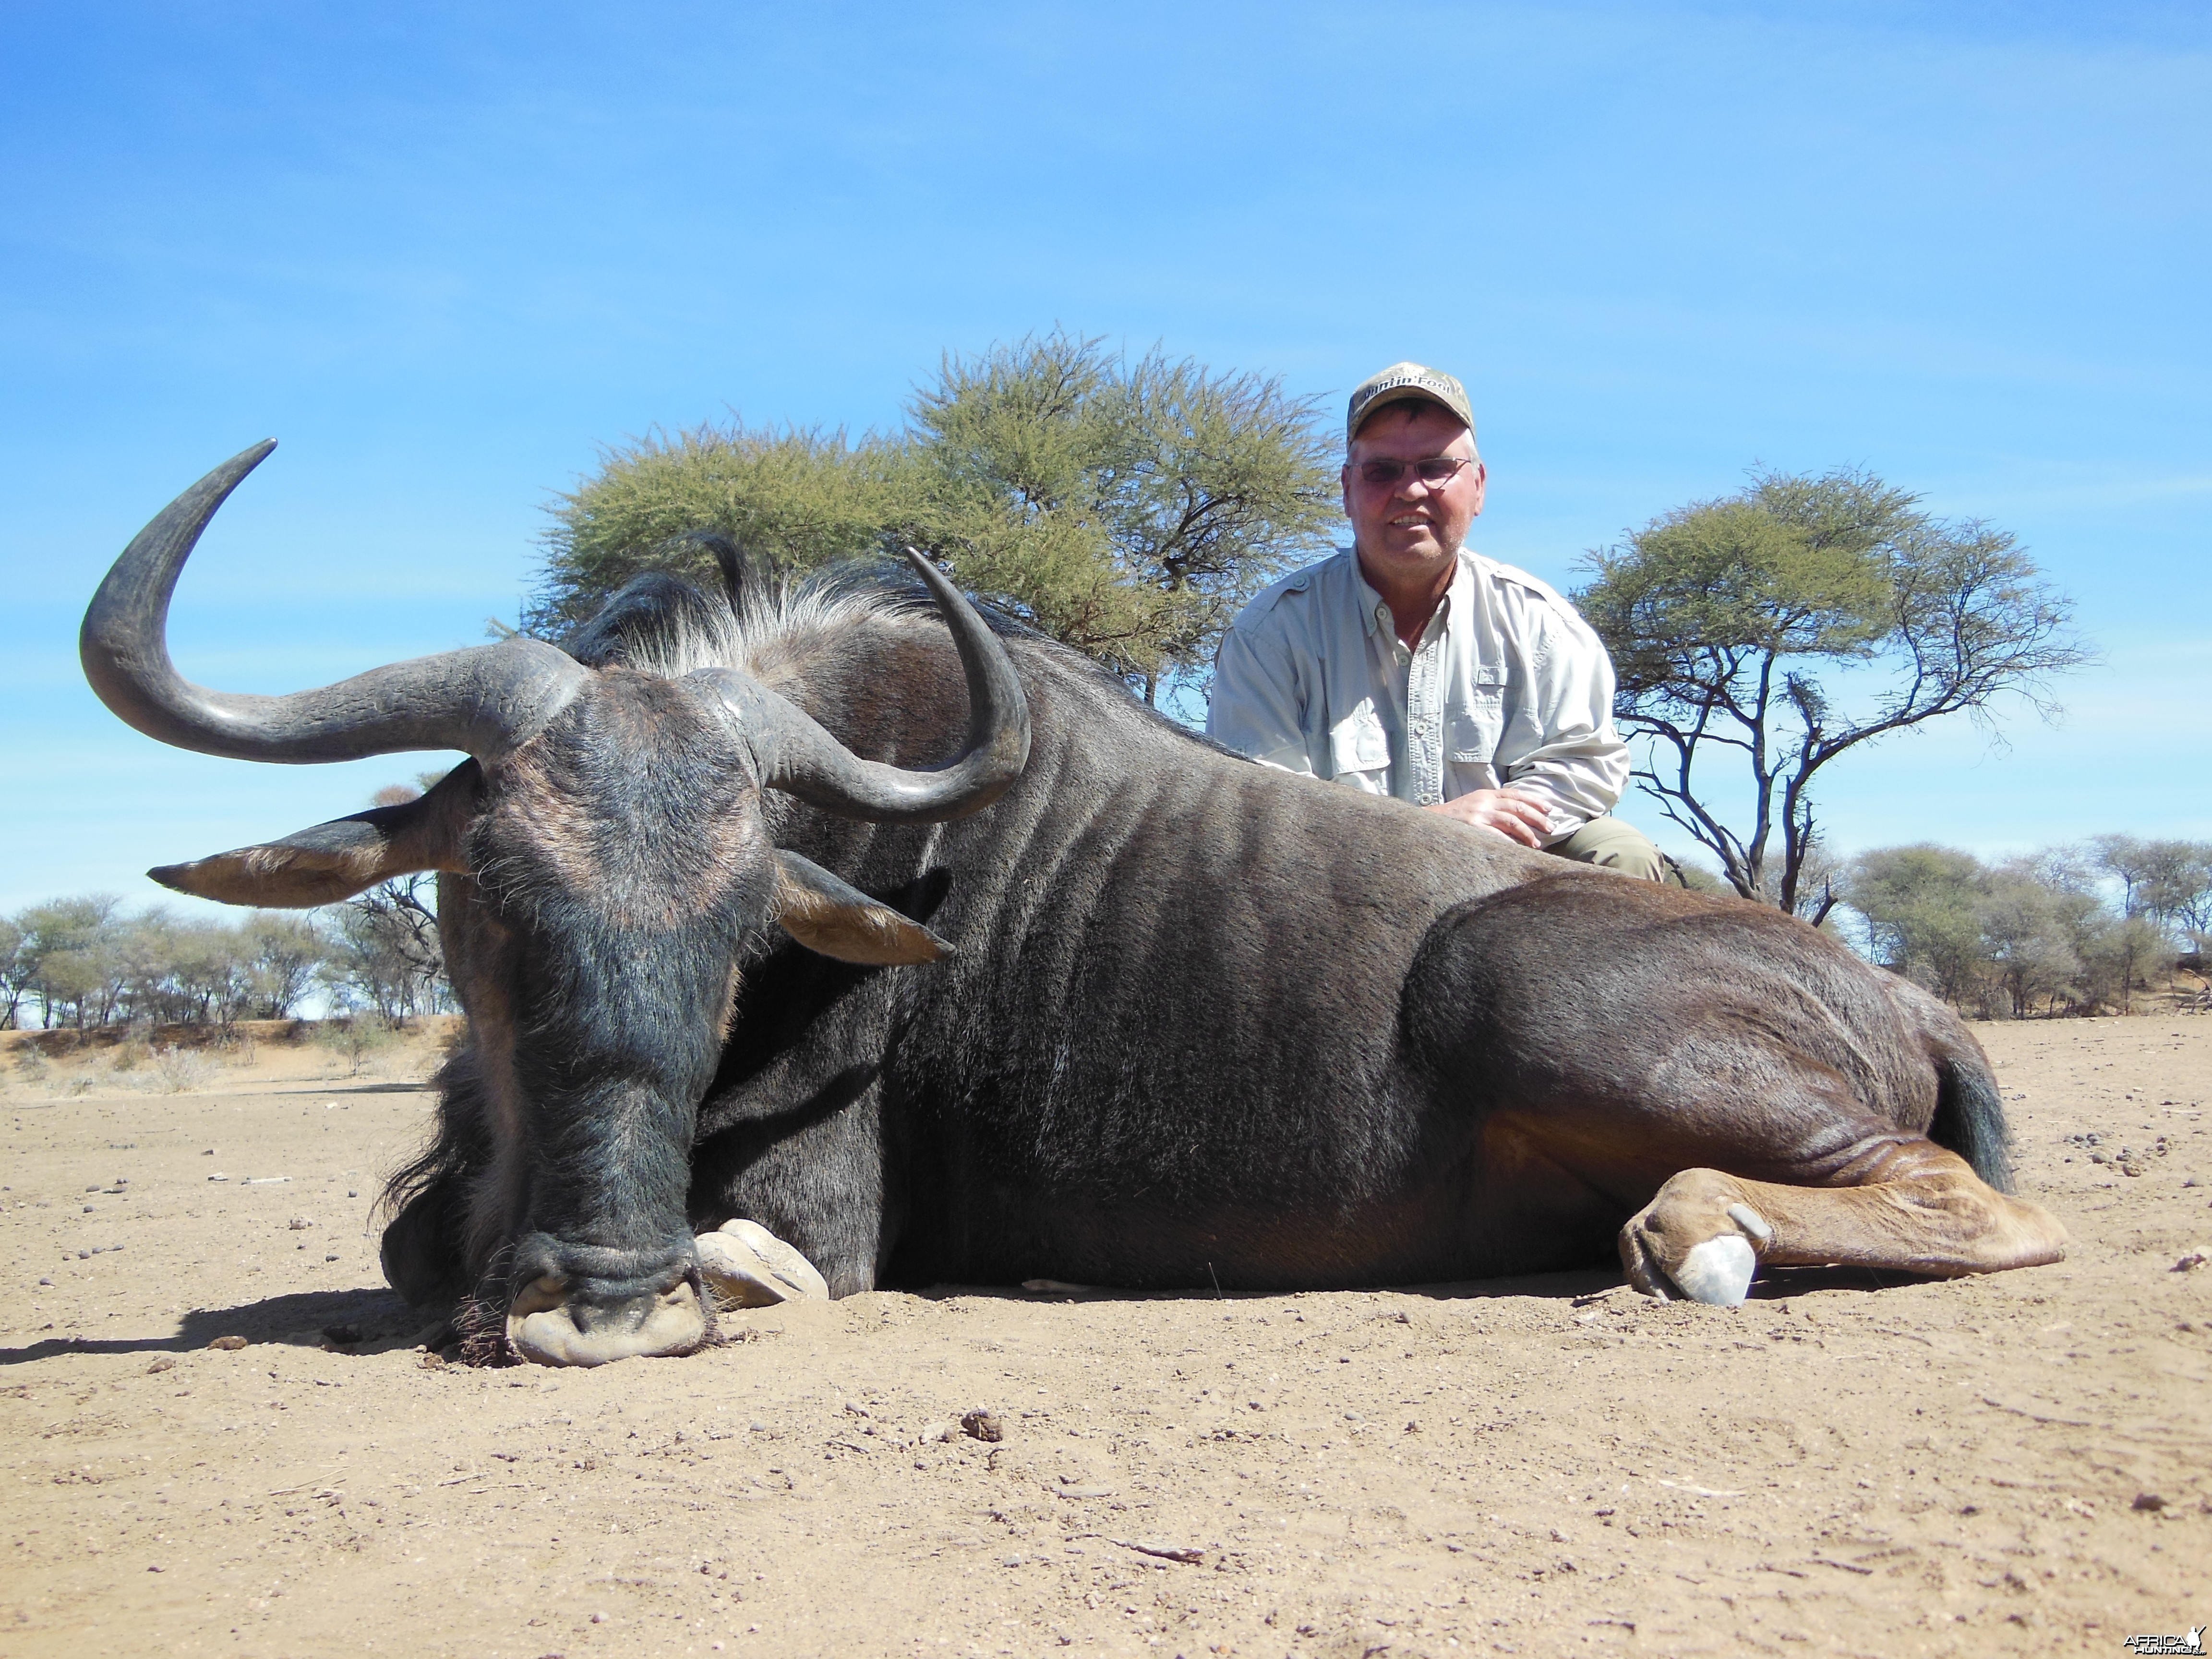 Blue Wildebeest hunted with Ozondjahe Hunting Safaris in Namibia